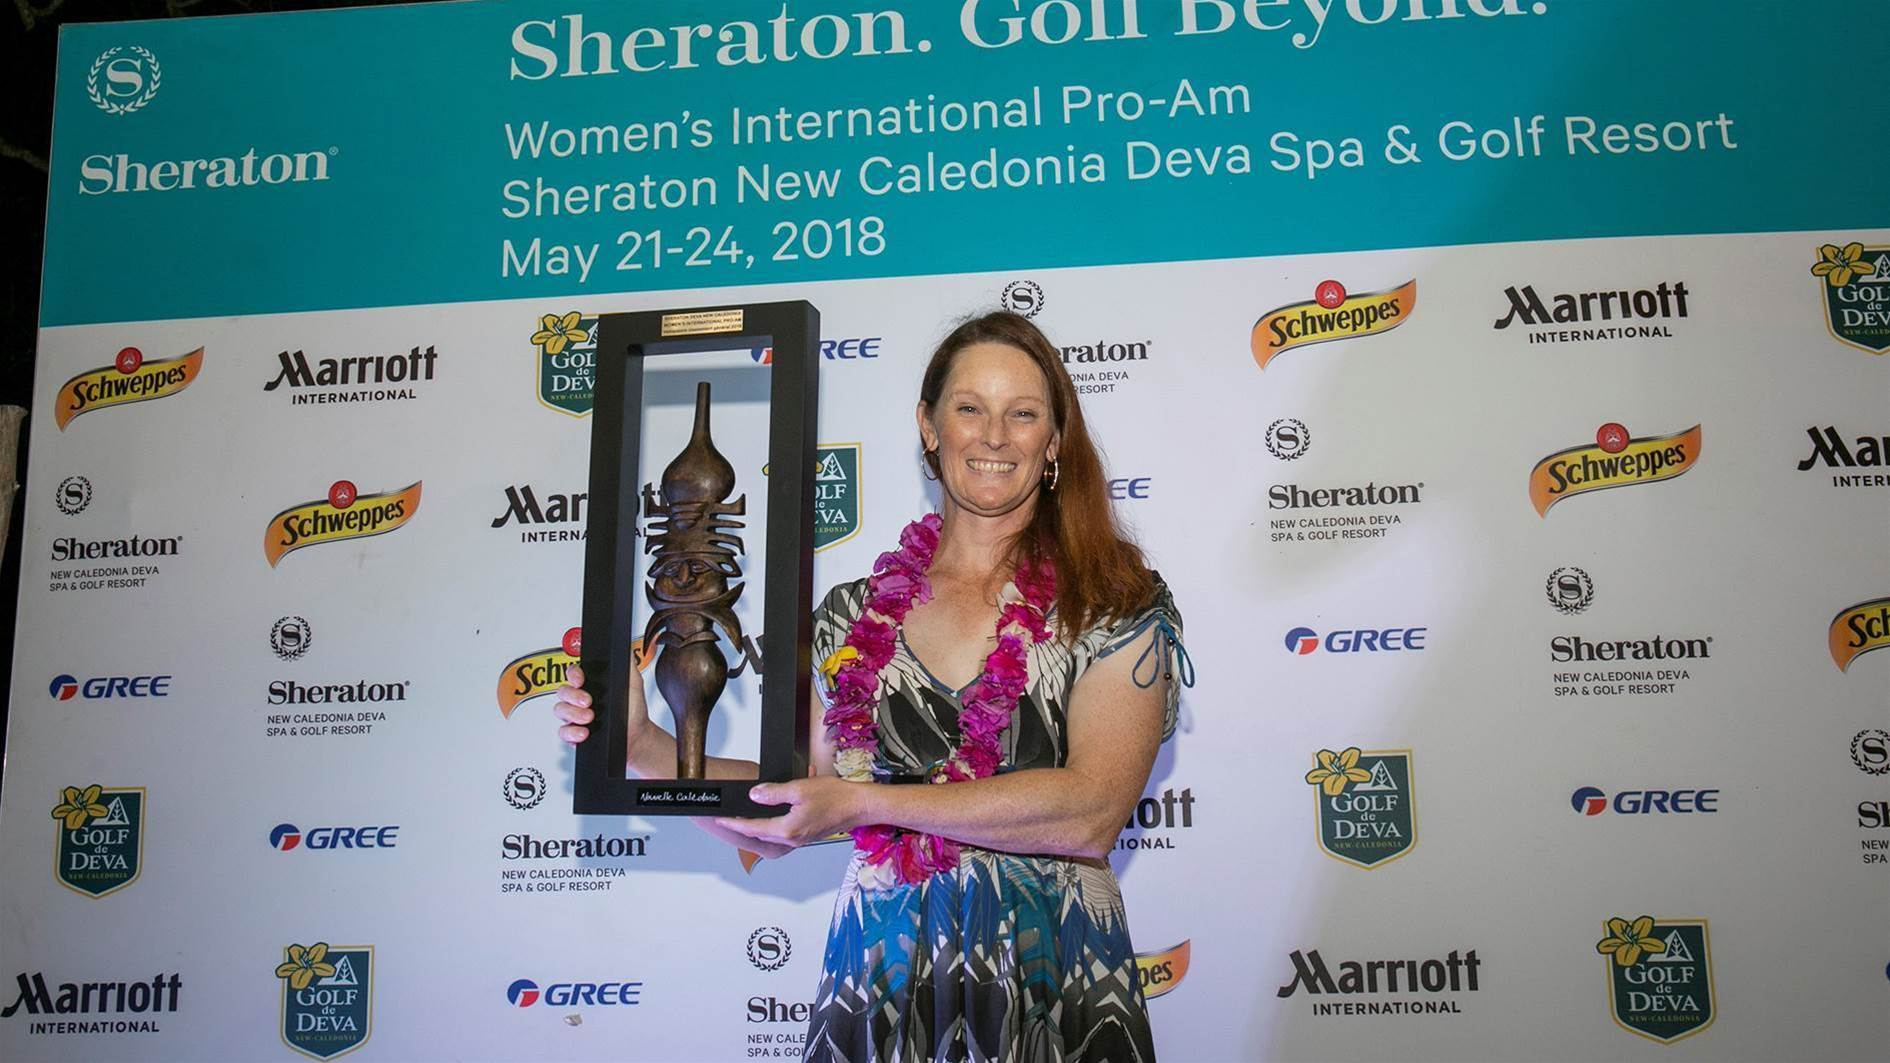 Relieved Gill takes Sheraton New Caledonia Deva Pro-am title